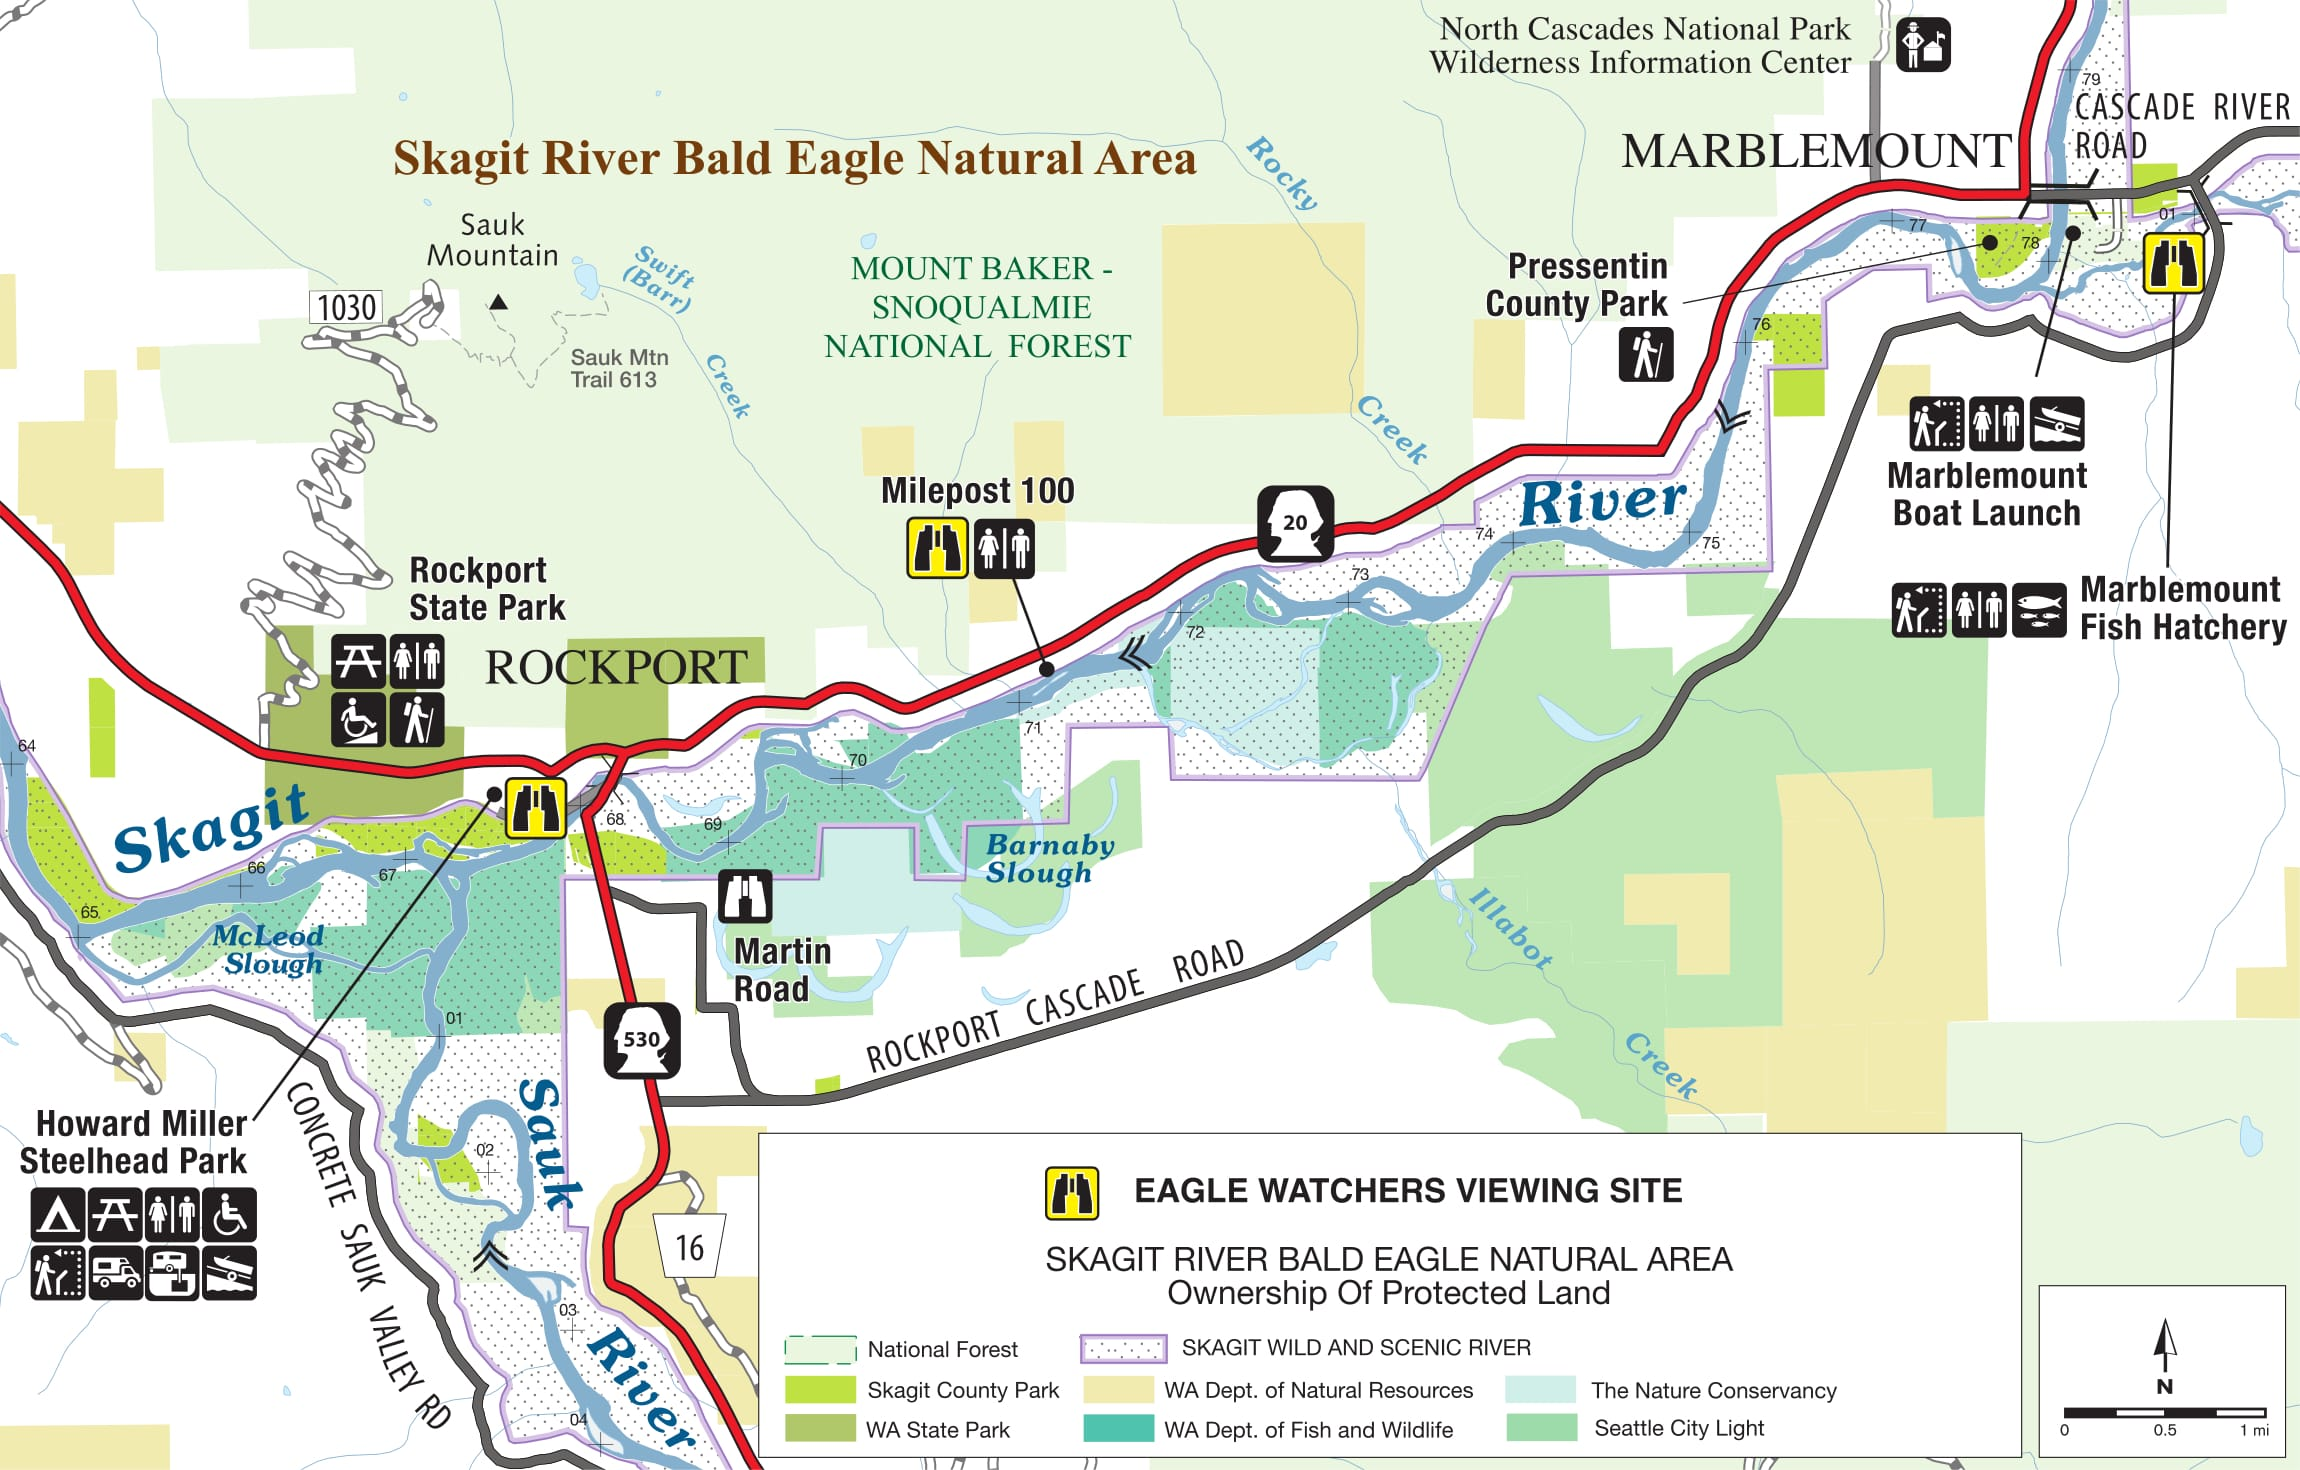 Eagle Watcher Viewing Sites.jpg